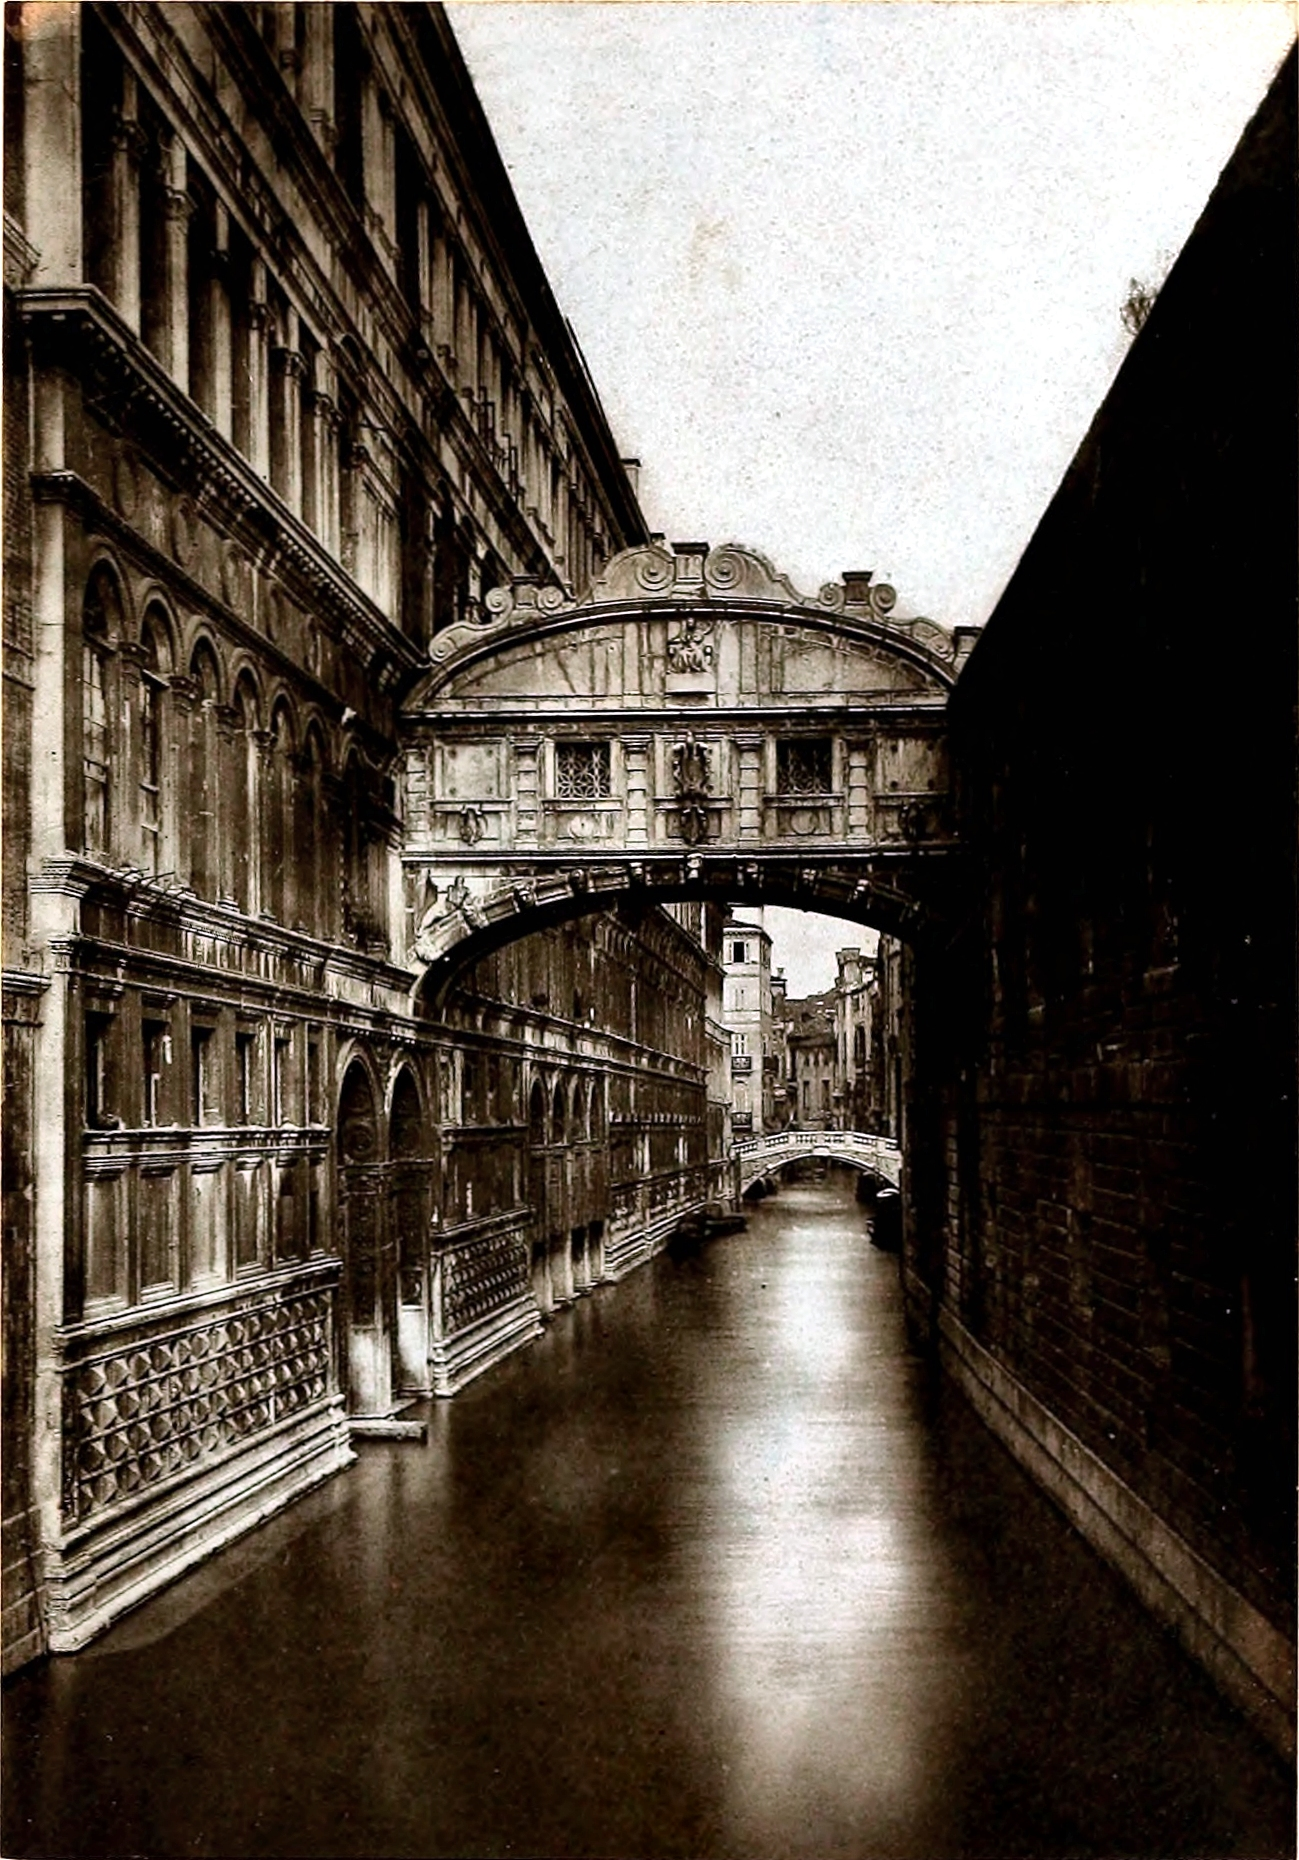 The Bridge of Sighs, Venice, Italy about 1875 by Stephen Thompson